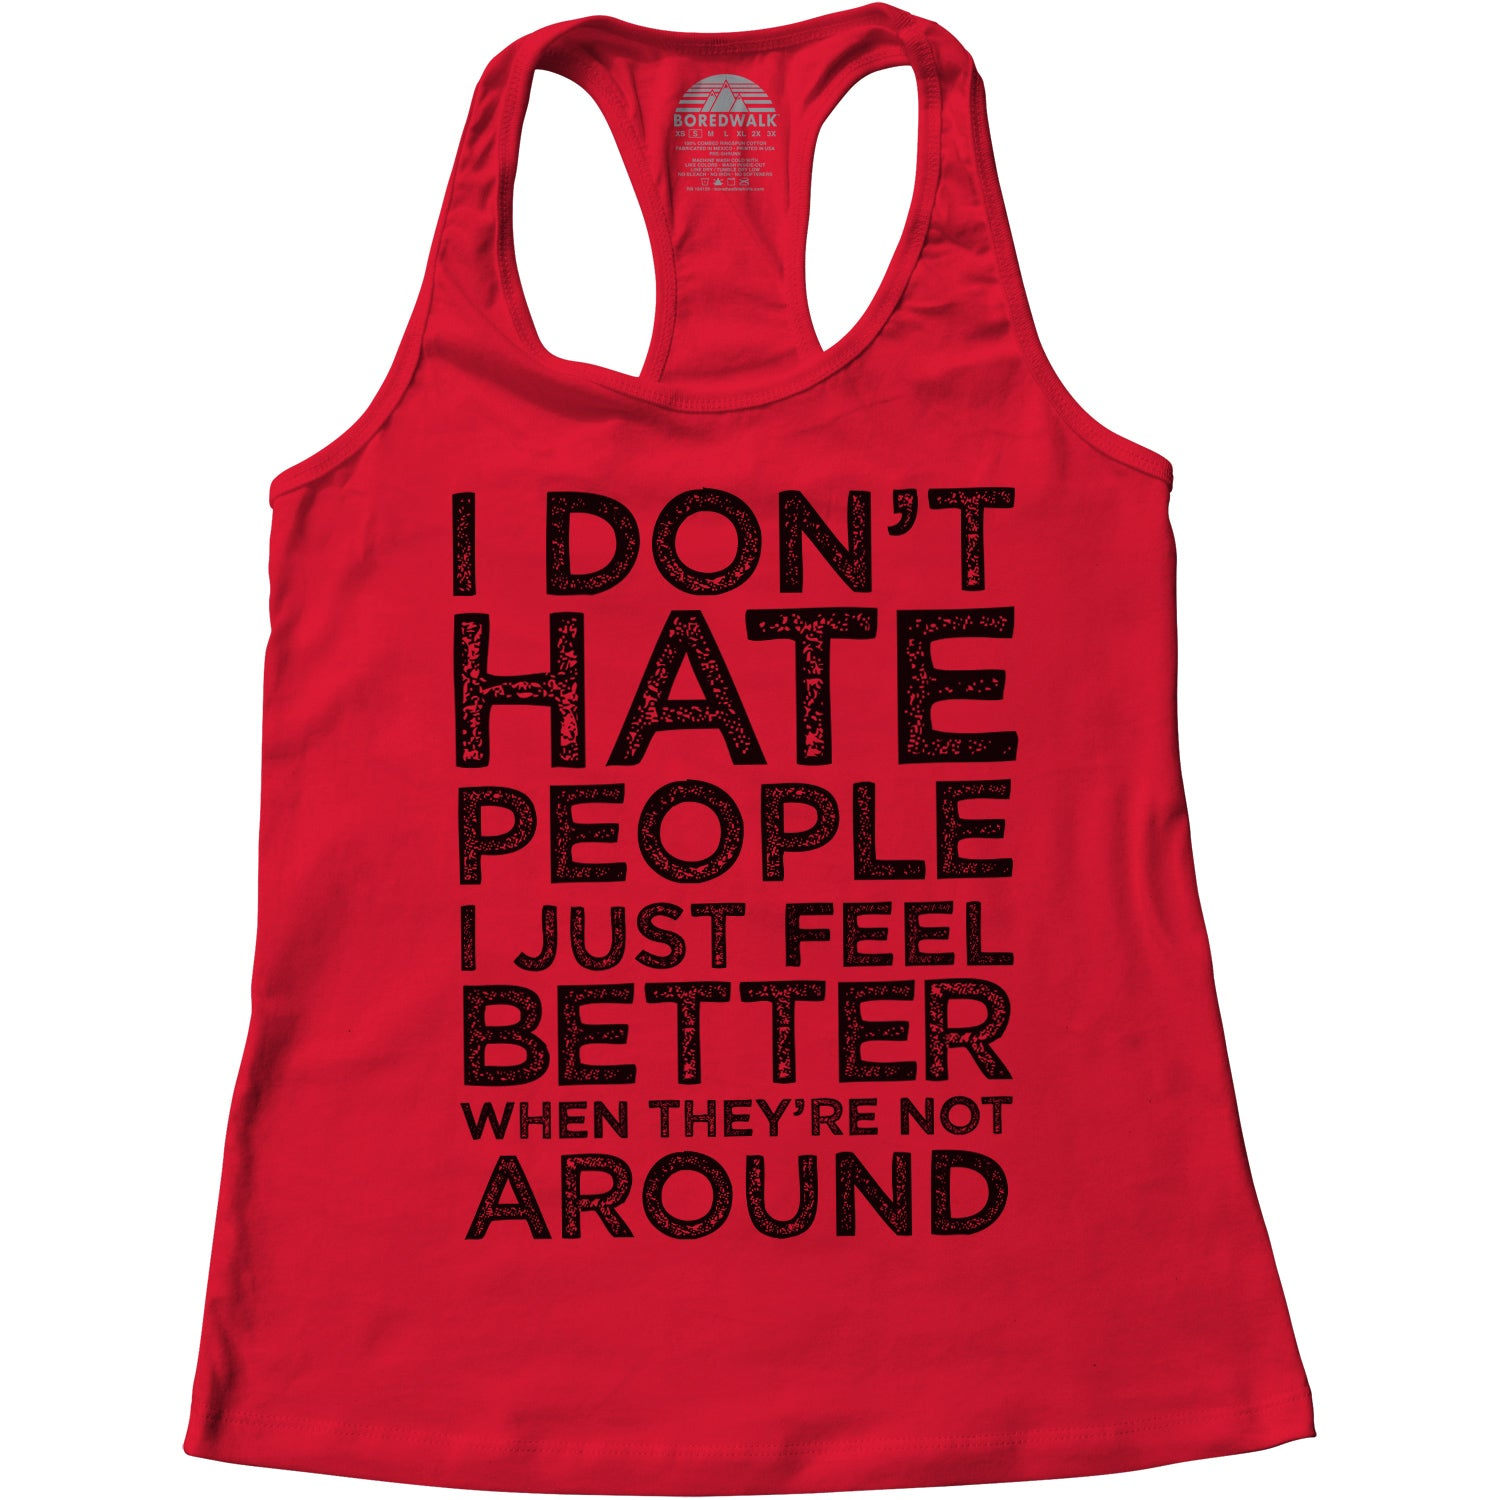 Women's I Don't Hate People I Just Feel Better When They're Not Around Racerback Tank Top